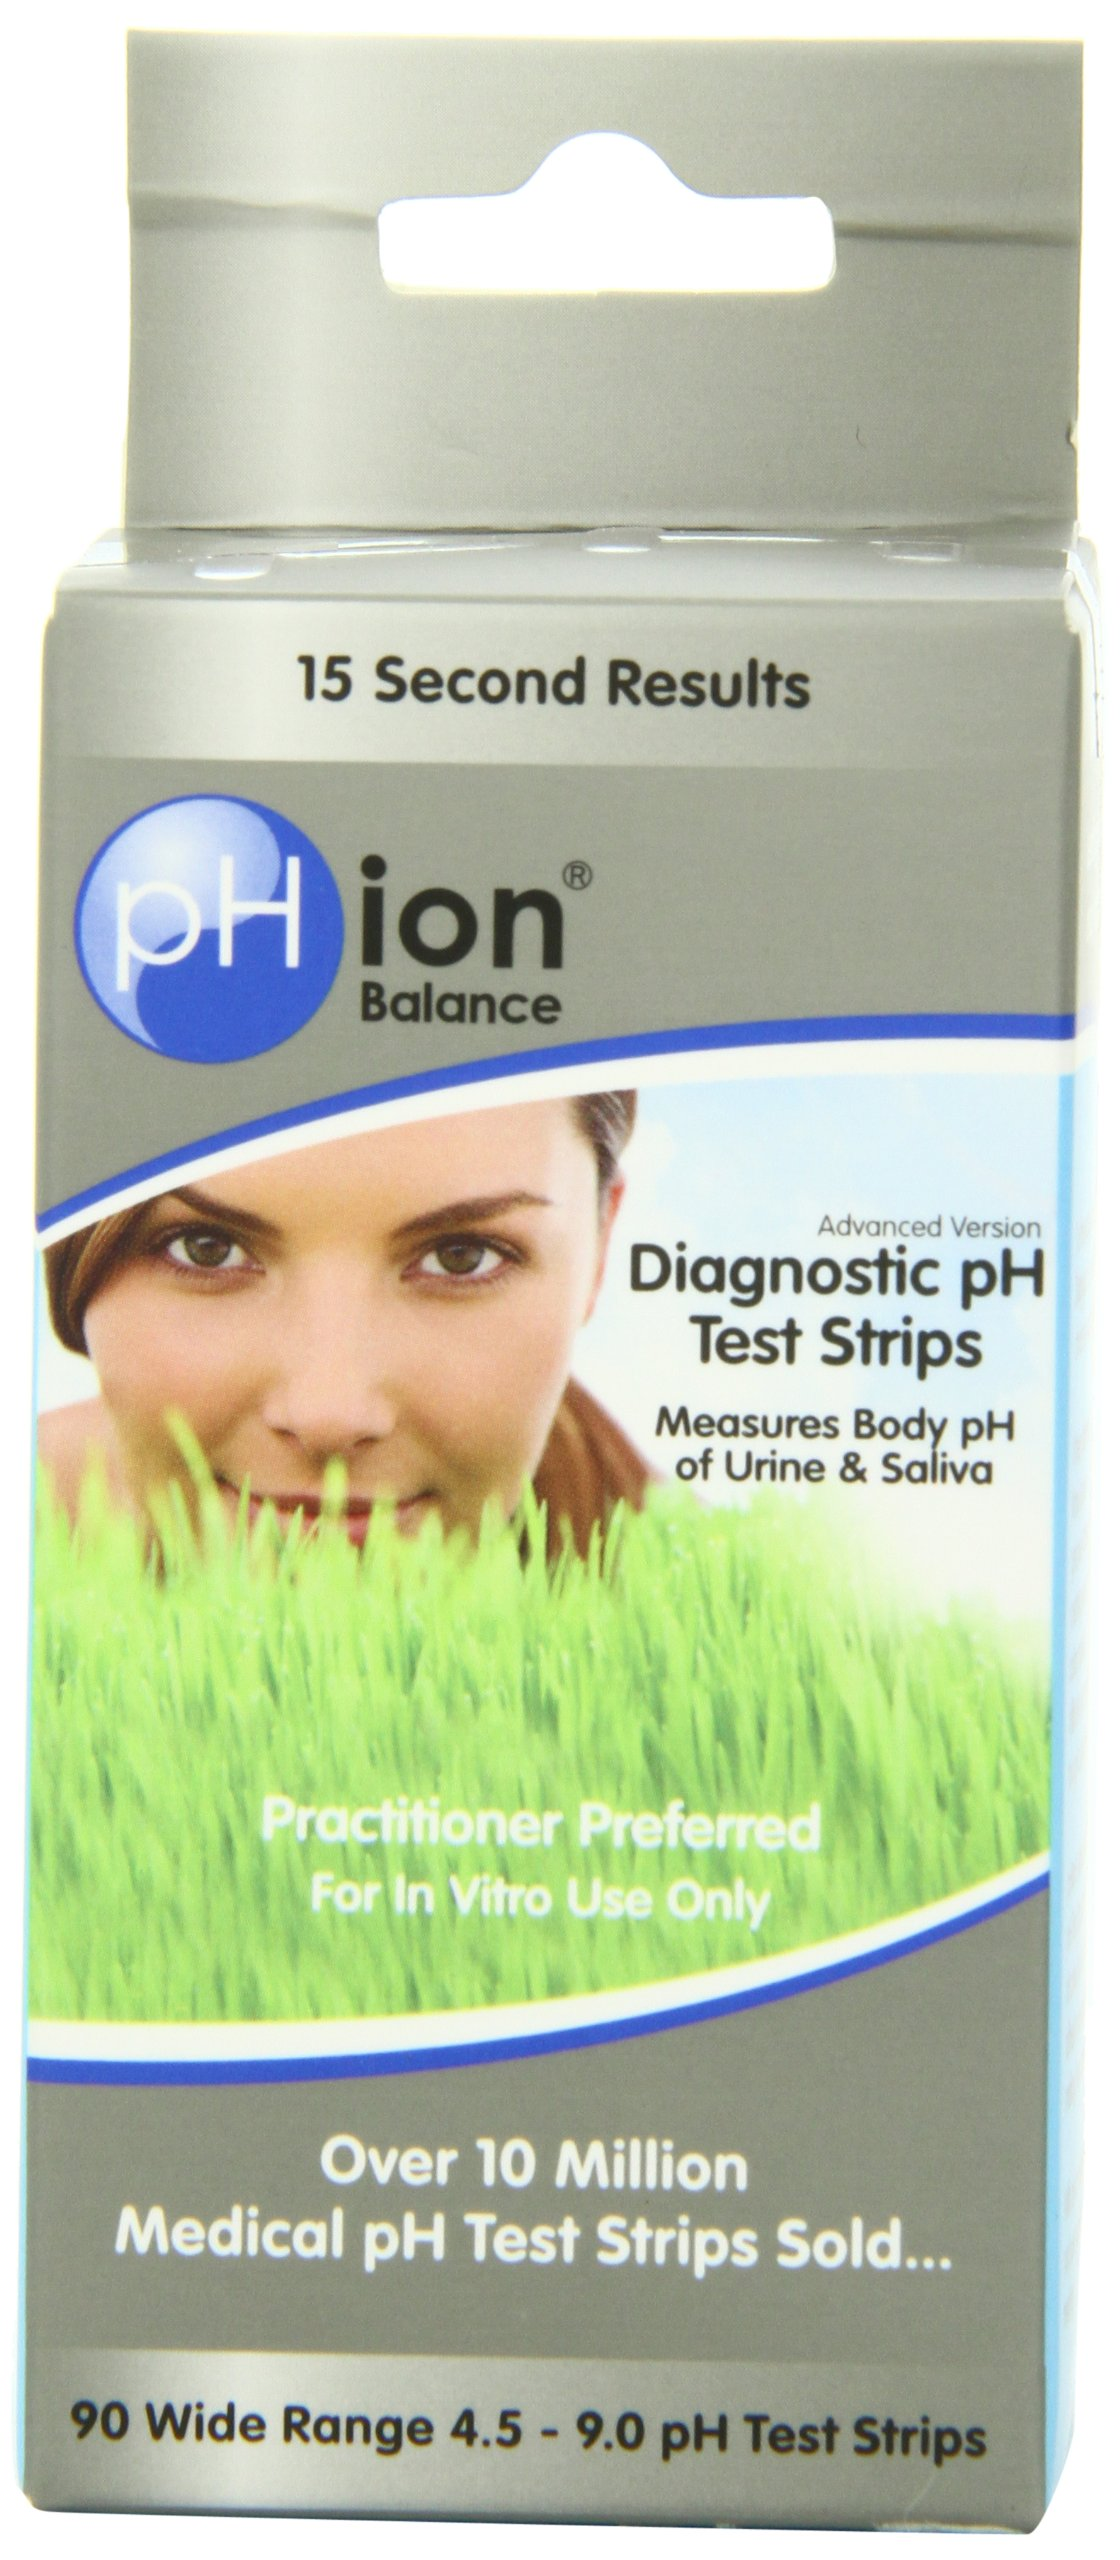 PHion Balance Diagnostic Ph Test Strips, 4.5 - 9.0 ph Range, 90-Count by pHION